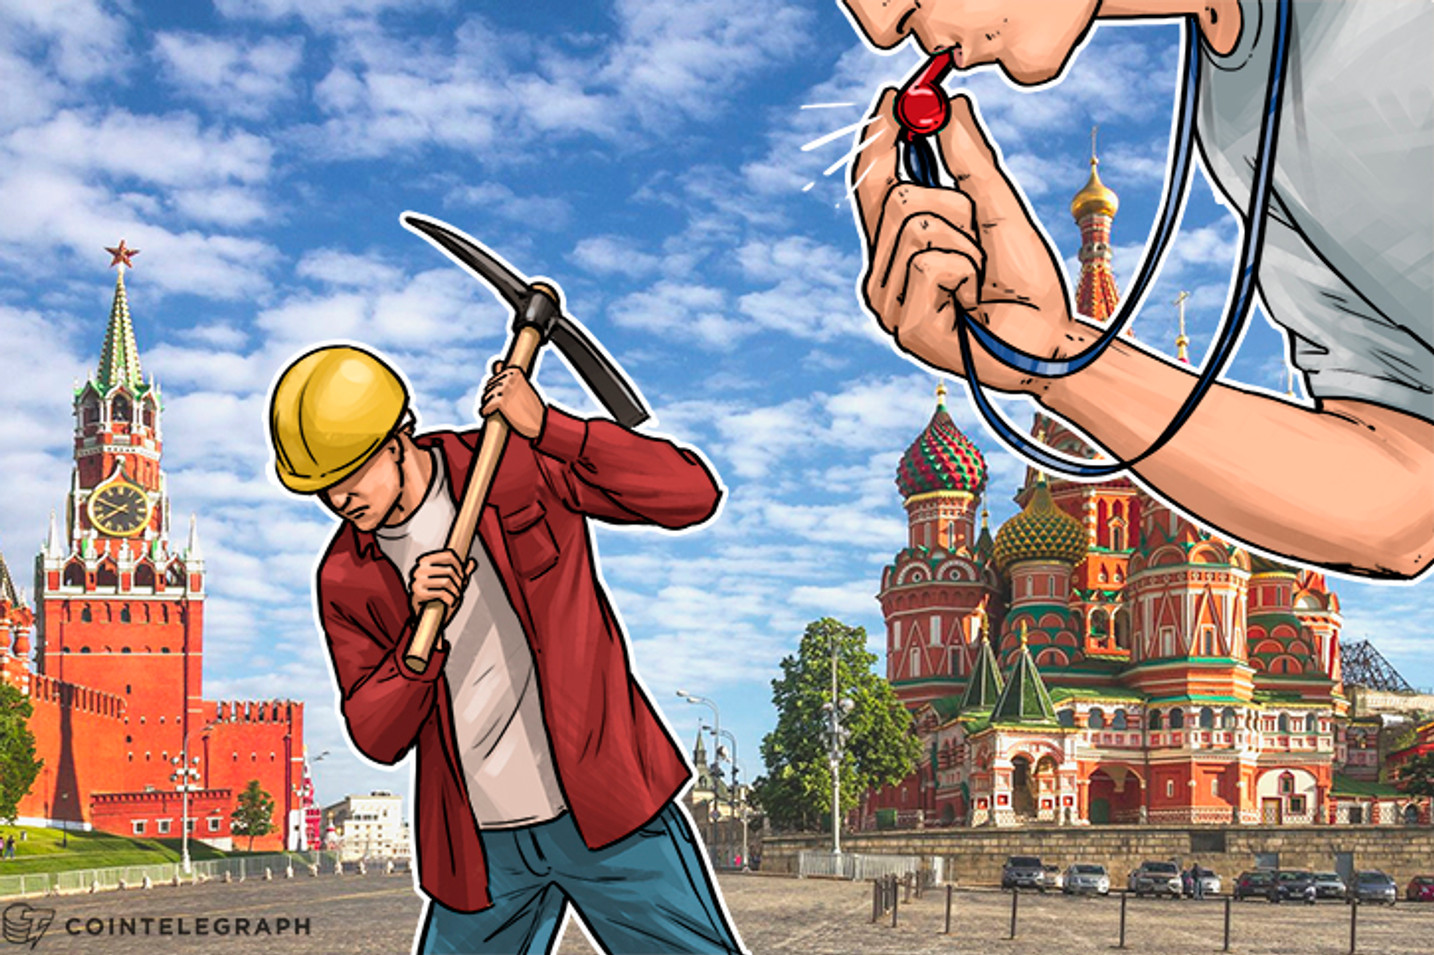 Bitcoin Will Be Legal In Russia, Mining to Be Regulated